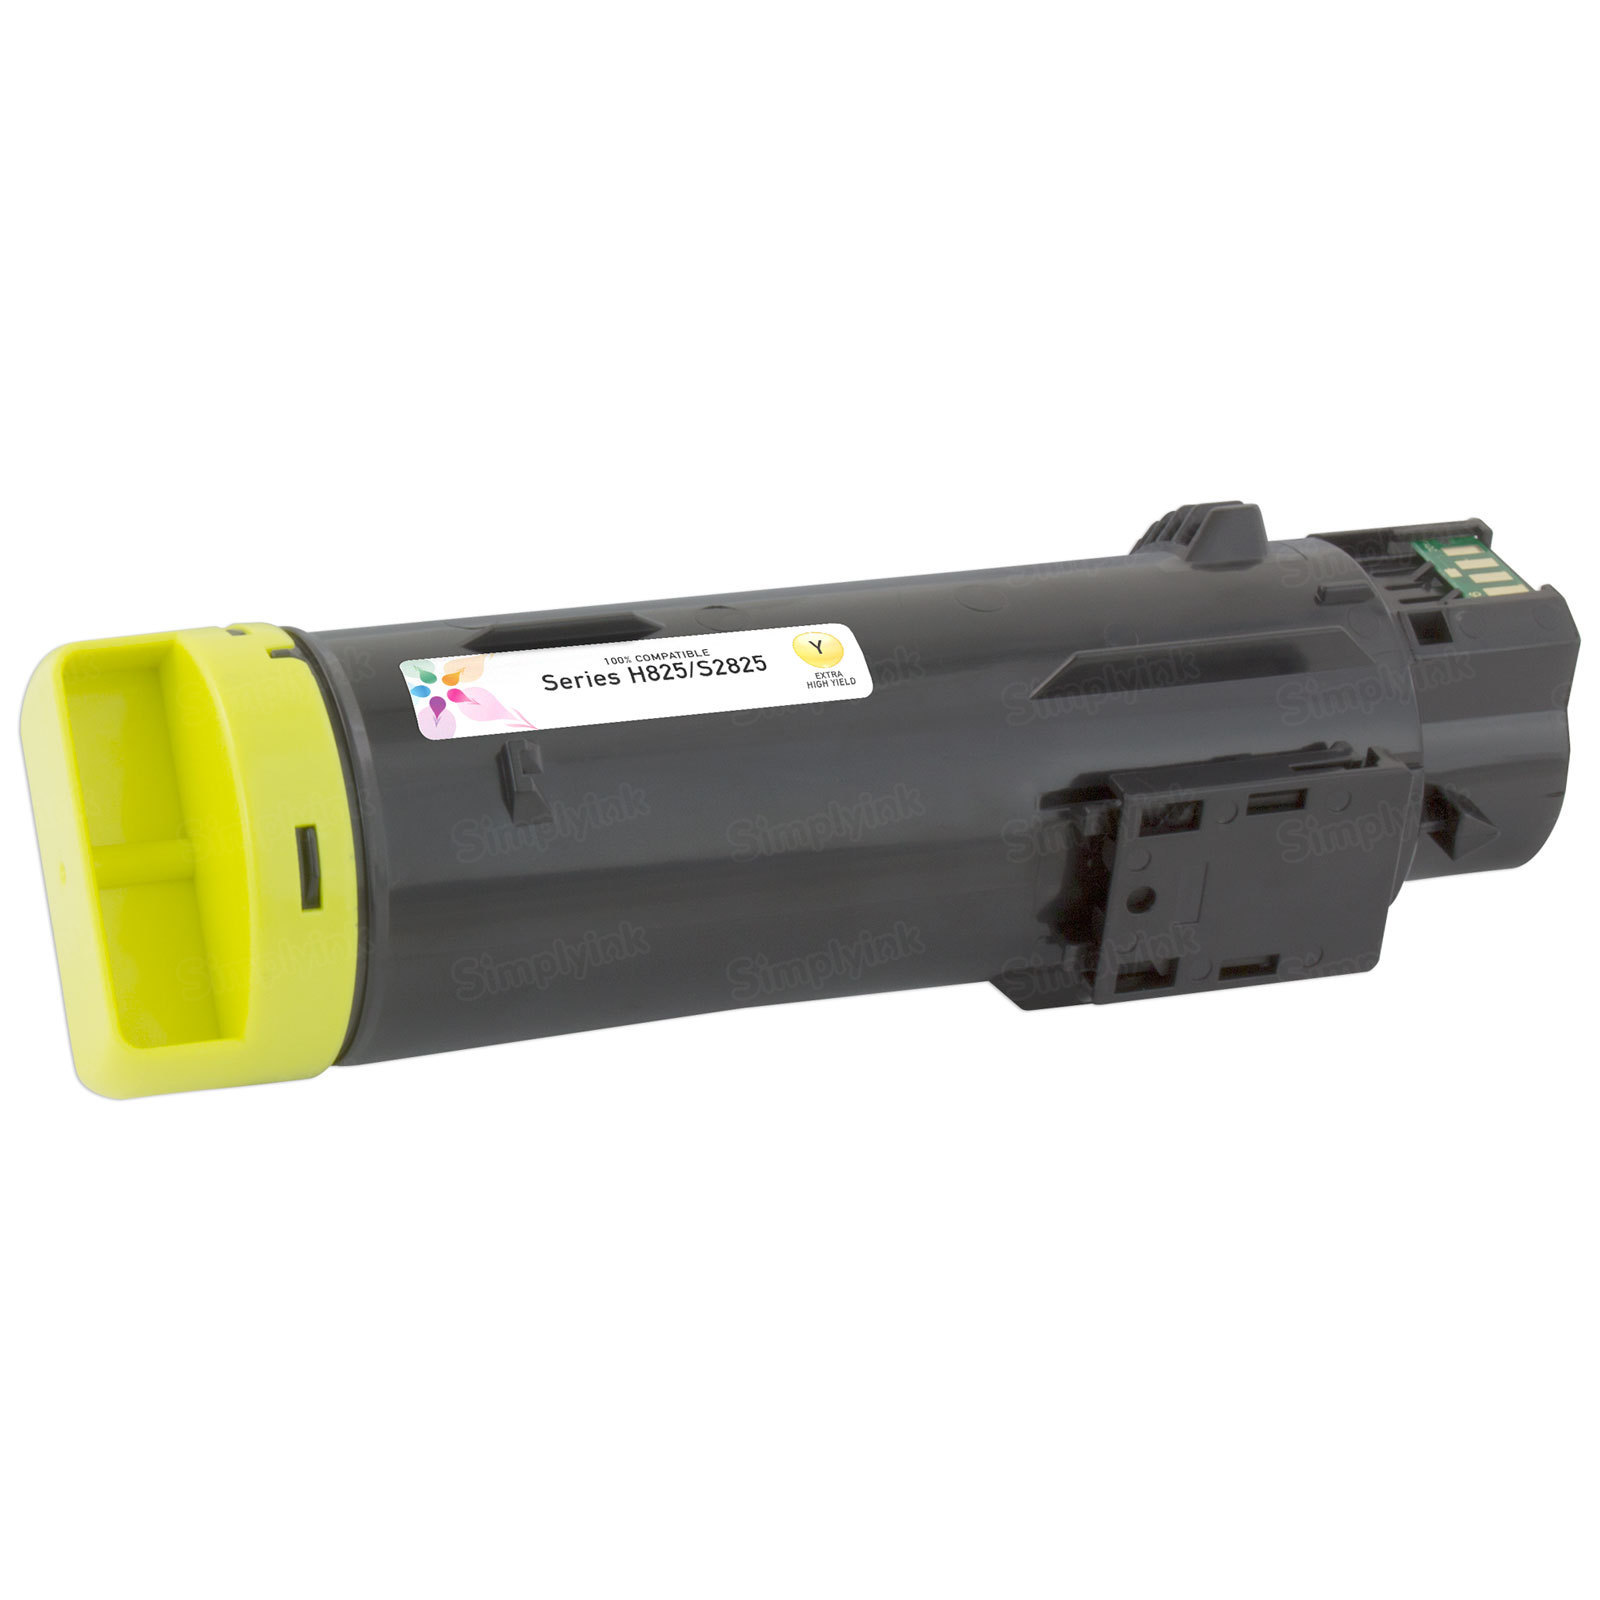 Comp. Yellow 1MD5G Toner for Dell H825/S2825